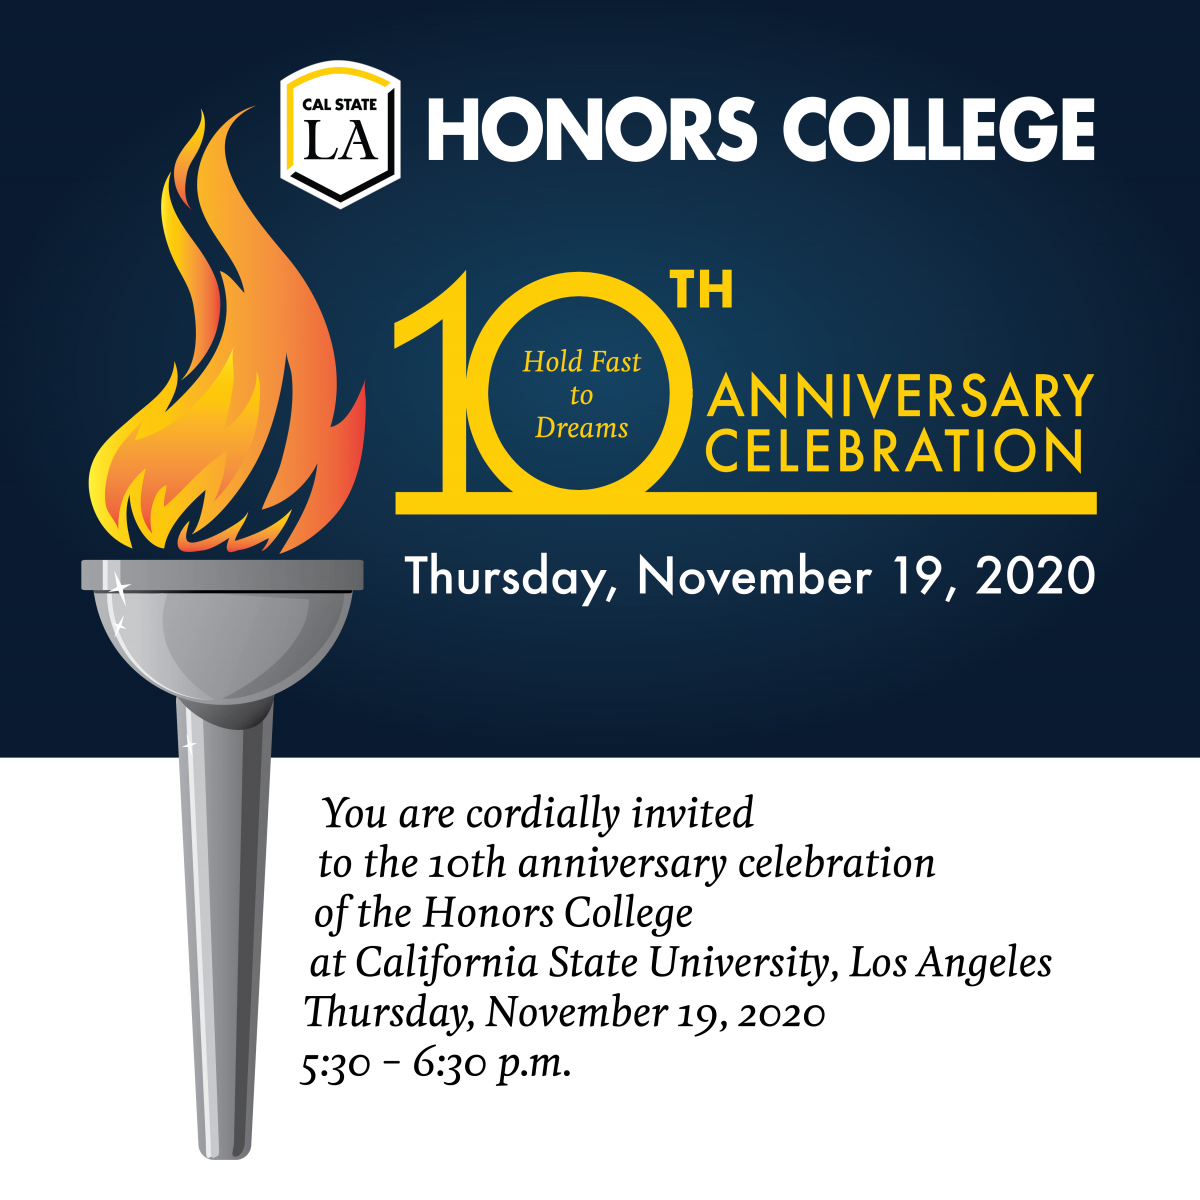 Invitation image with a blue and white background and the image of a torch. The copy on the graphic reads: Cal State LA Honors College 10th Anniversary Celebration, Thursday, November 19, 2020. You Are cordially invited to the 10th anniversary celebration of the Honors College at California State University, Los Angeles. Thursday, November 19, 2020. 5:30 - 6:30 p.m.